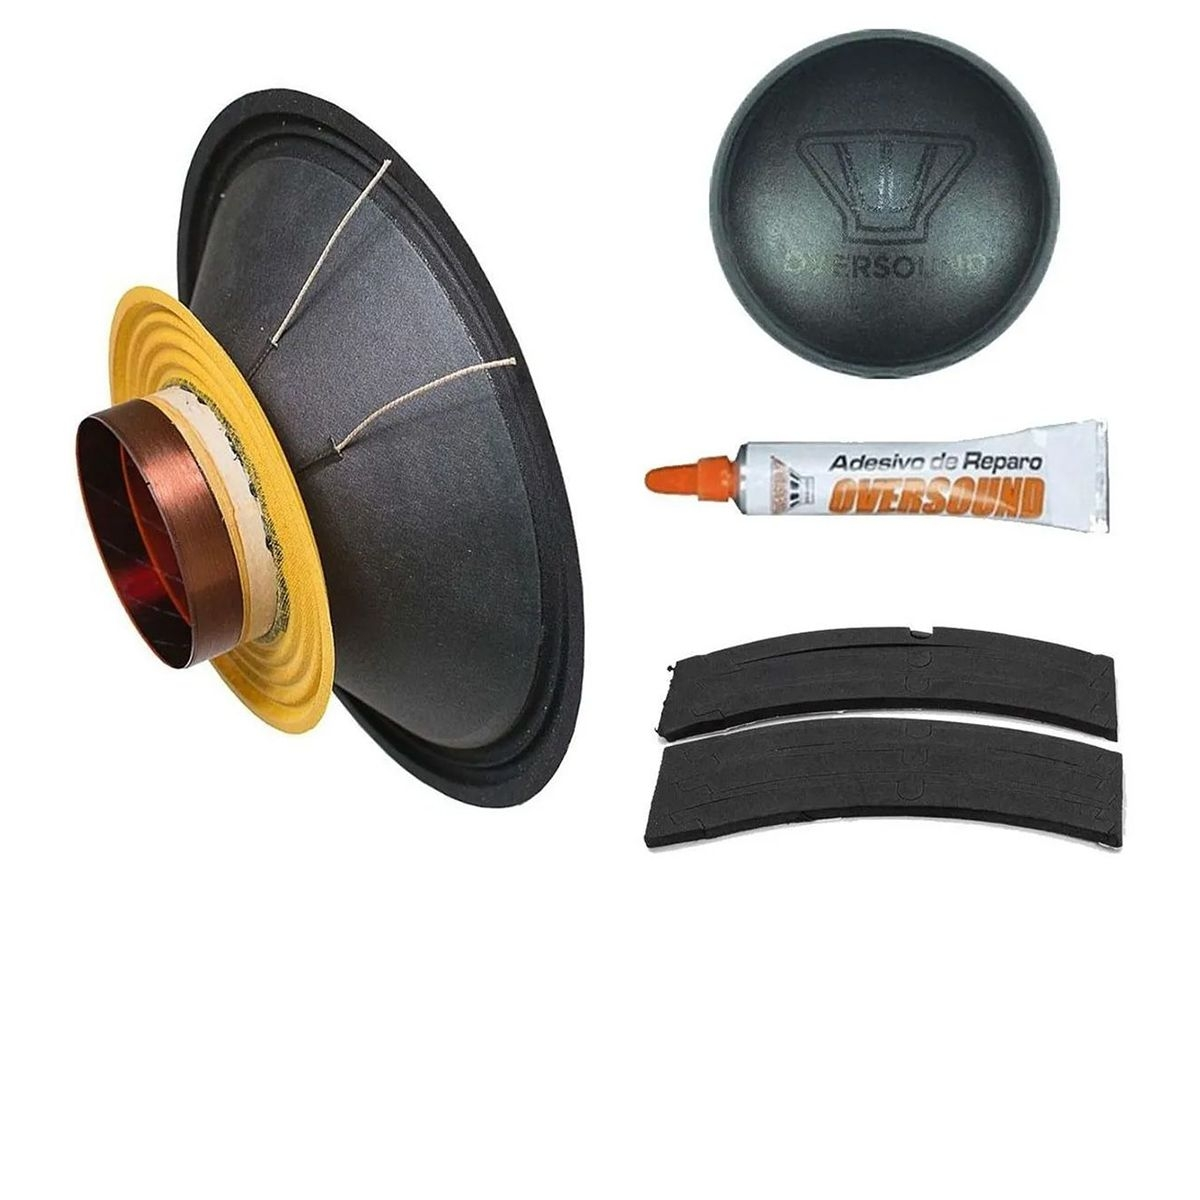 Kit Reparo Oversound MG12-300 8 Ohms